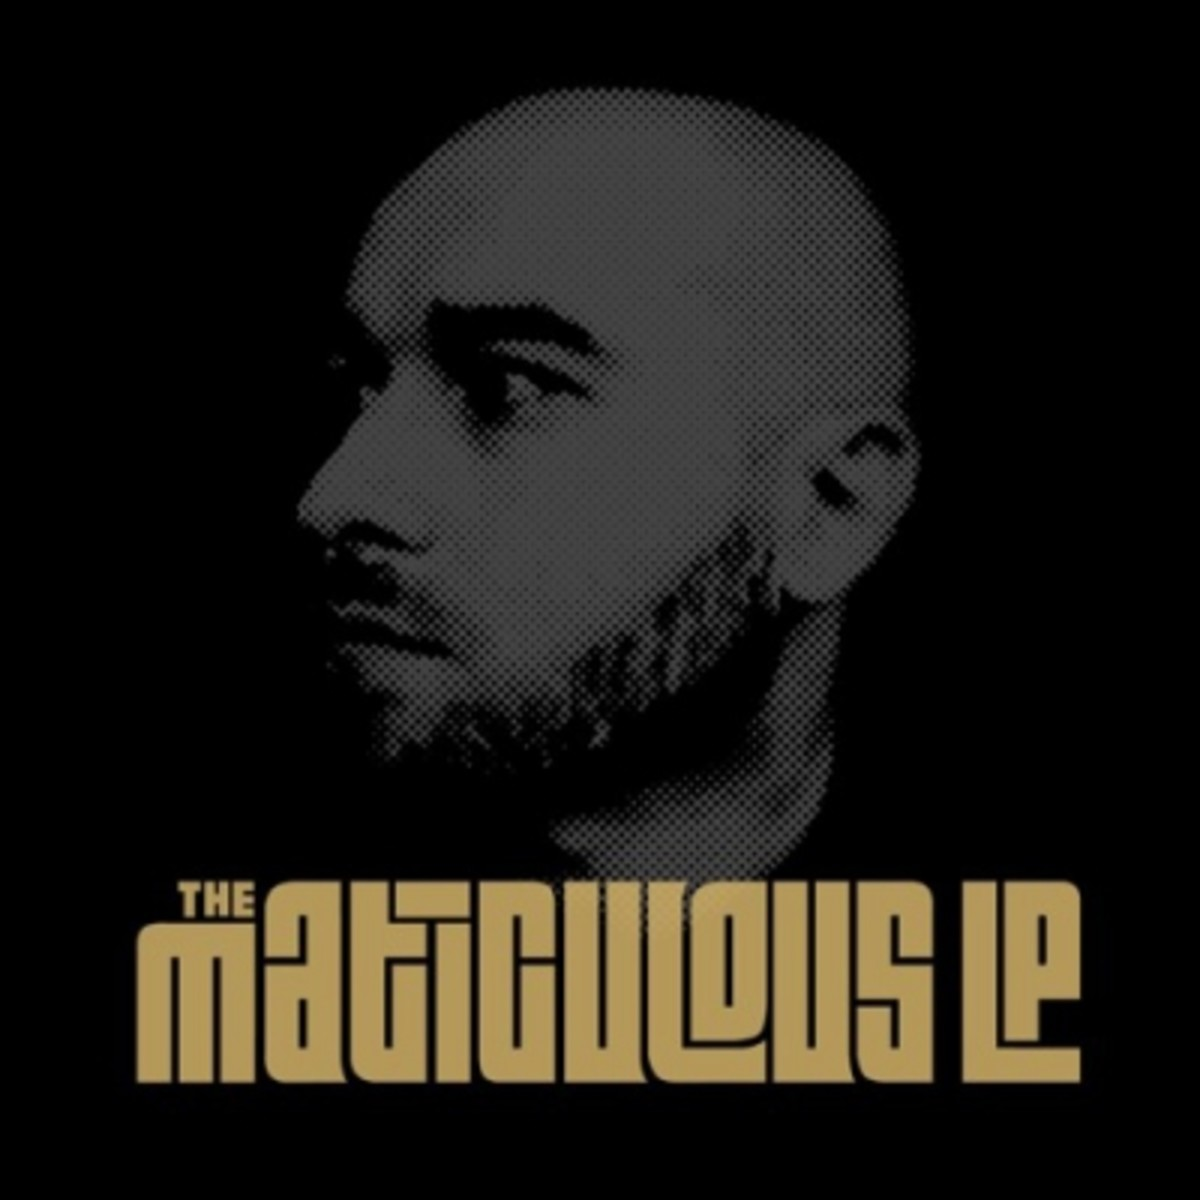 maticulous-the-maticulous-lp.jpg